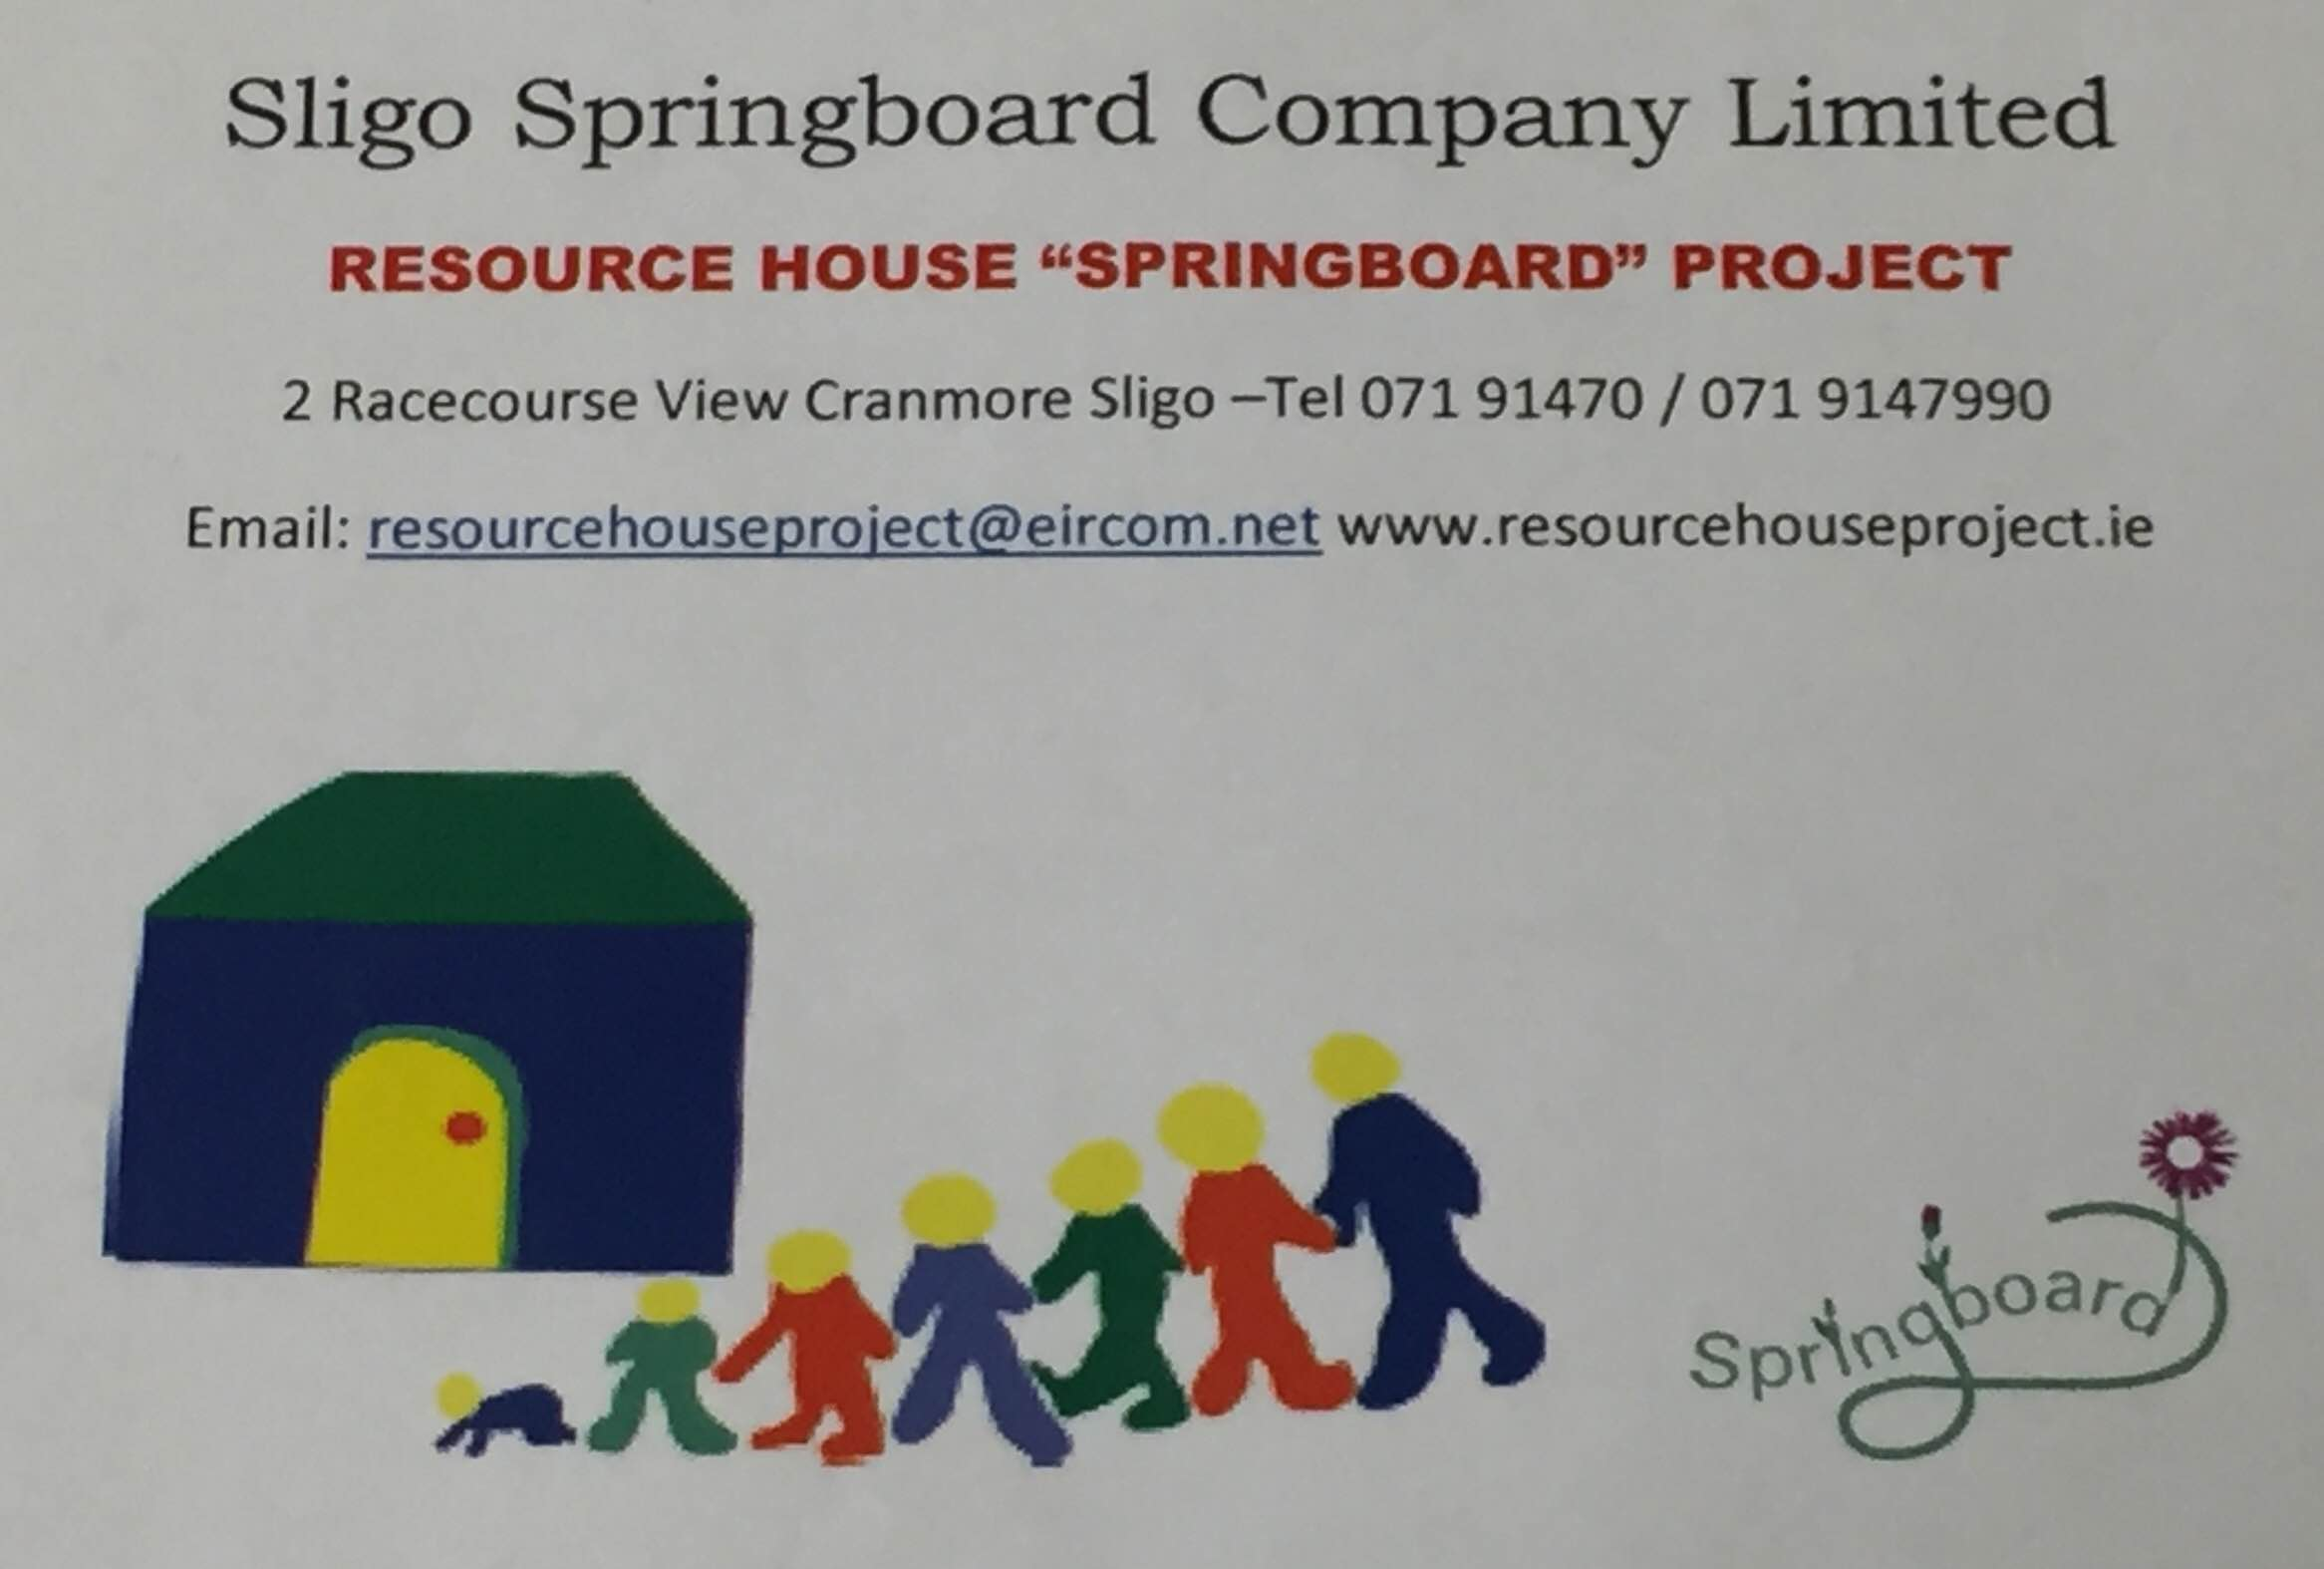 3-resource-house-springboard-project